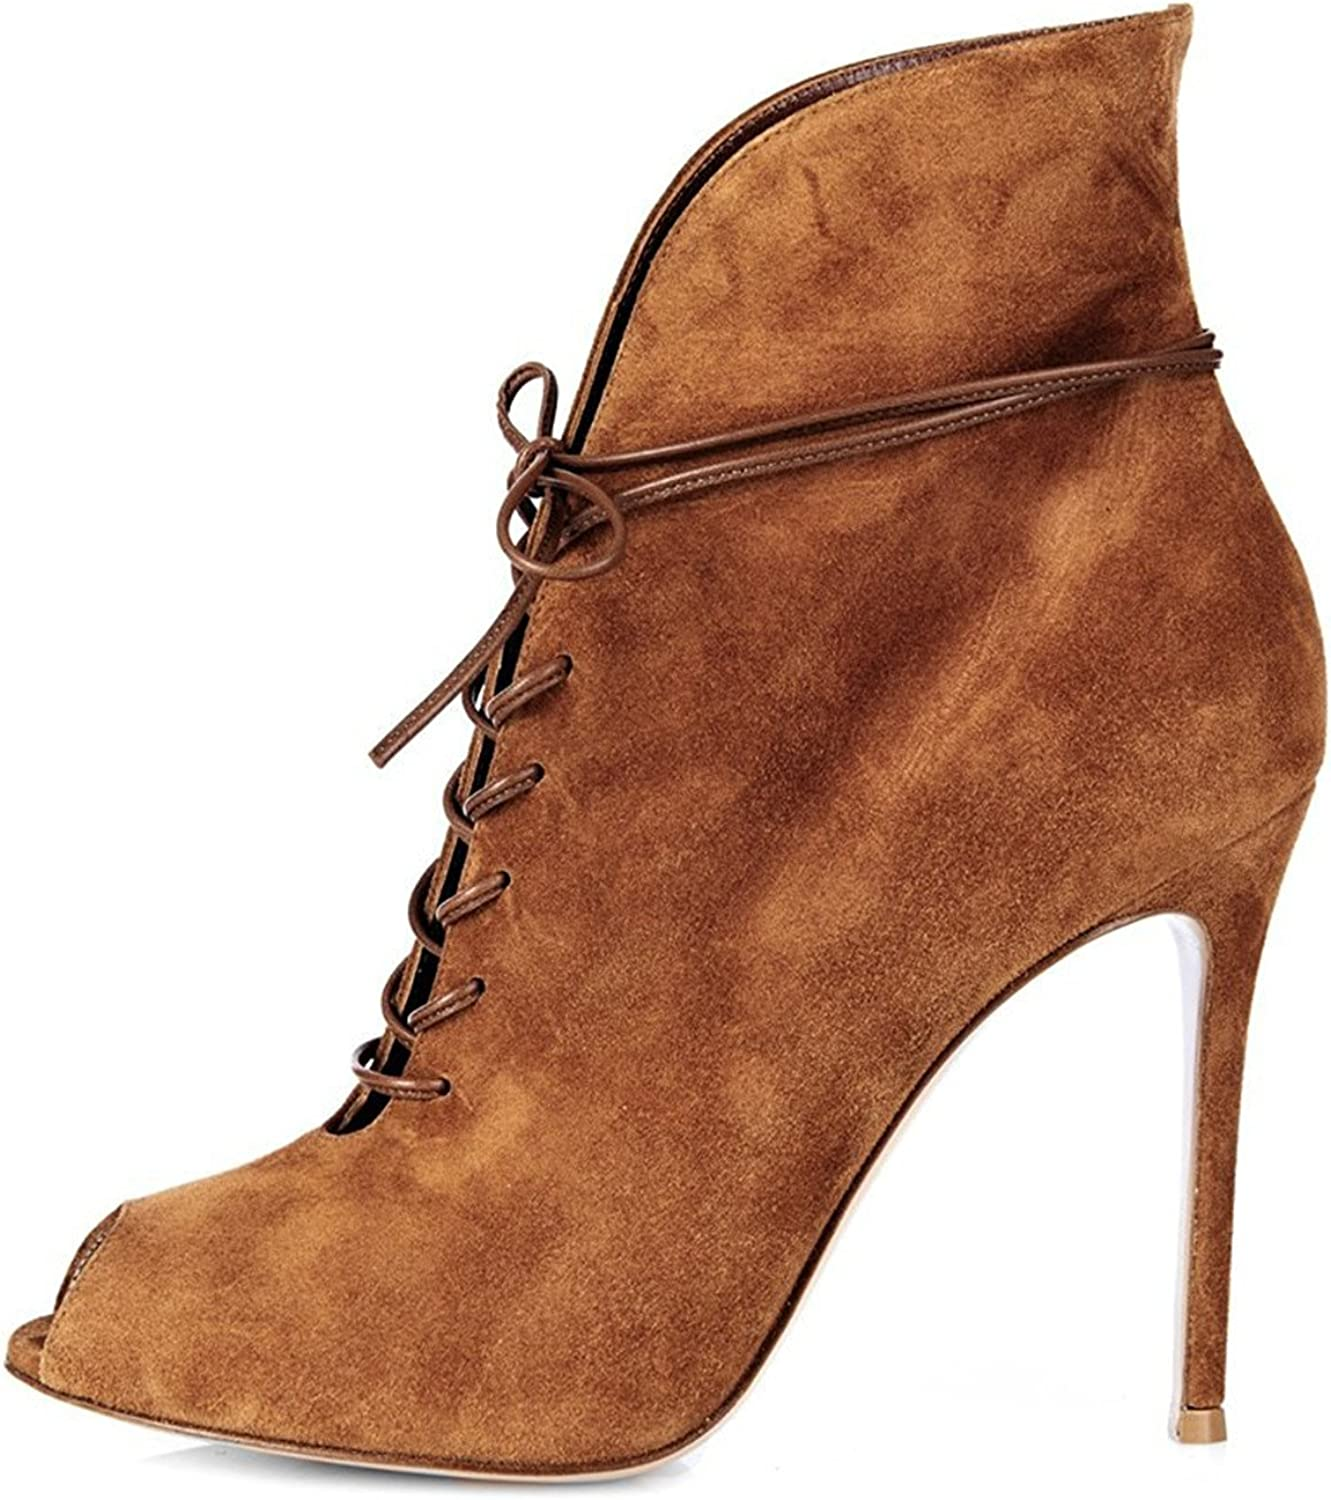 Reinhar Popular Toe Lace up High Slim Stiletto Ankle Boots Tan Brown